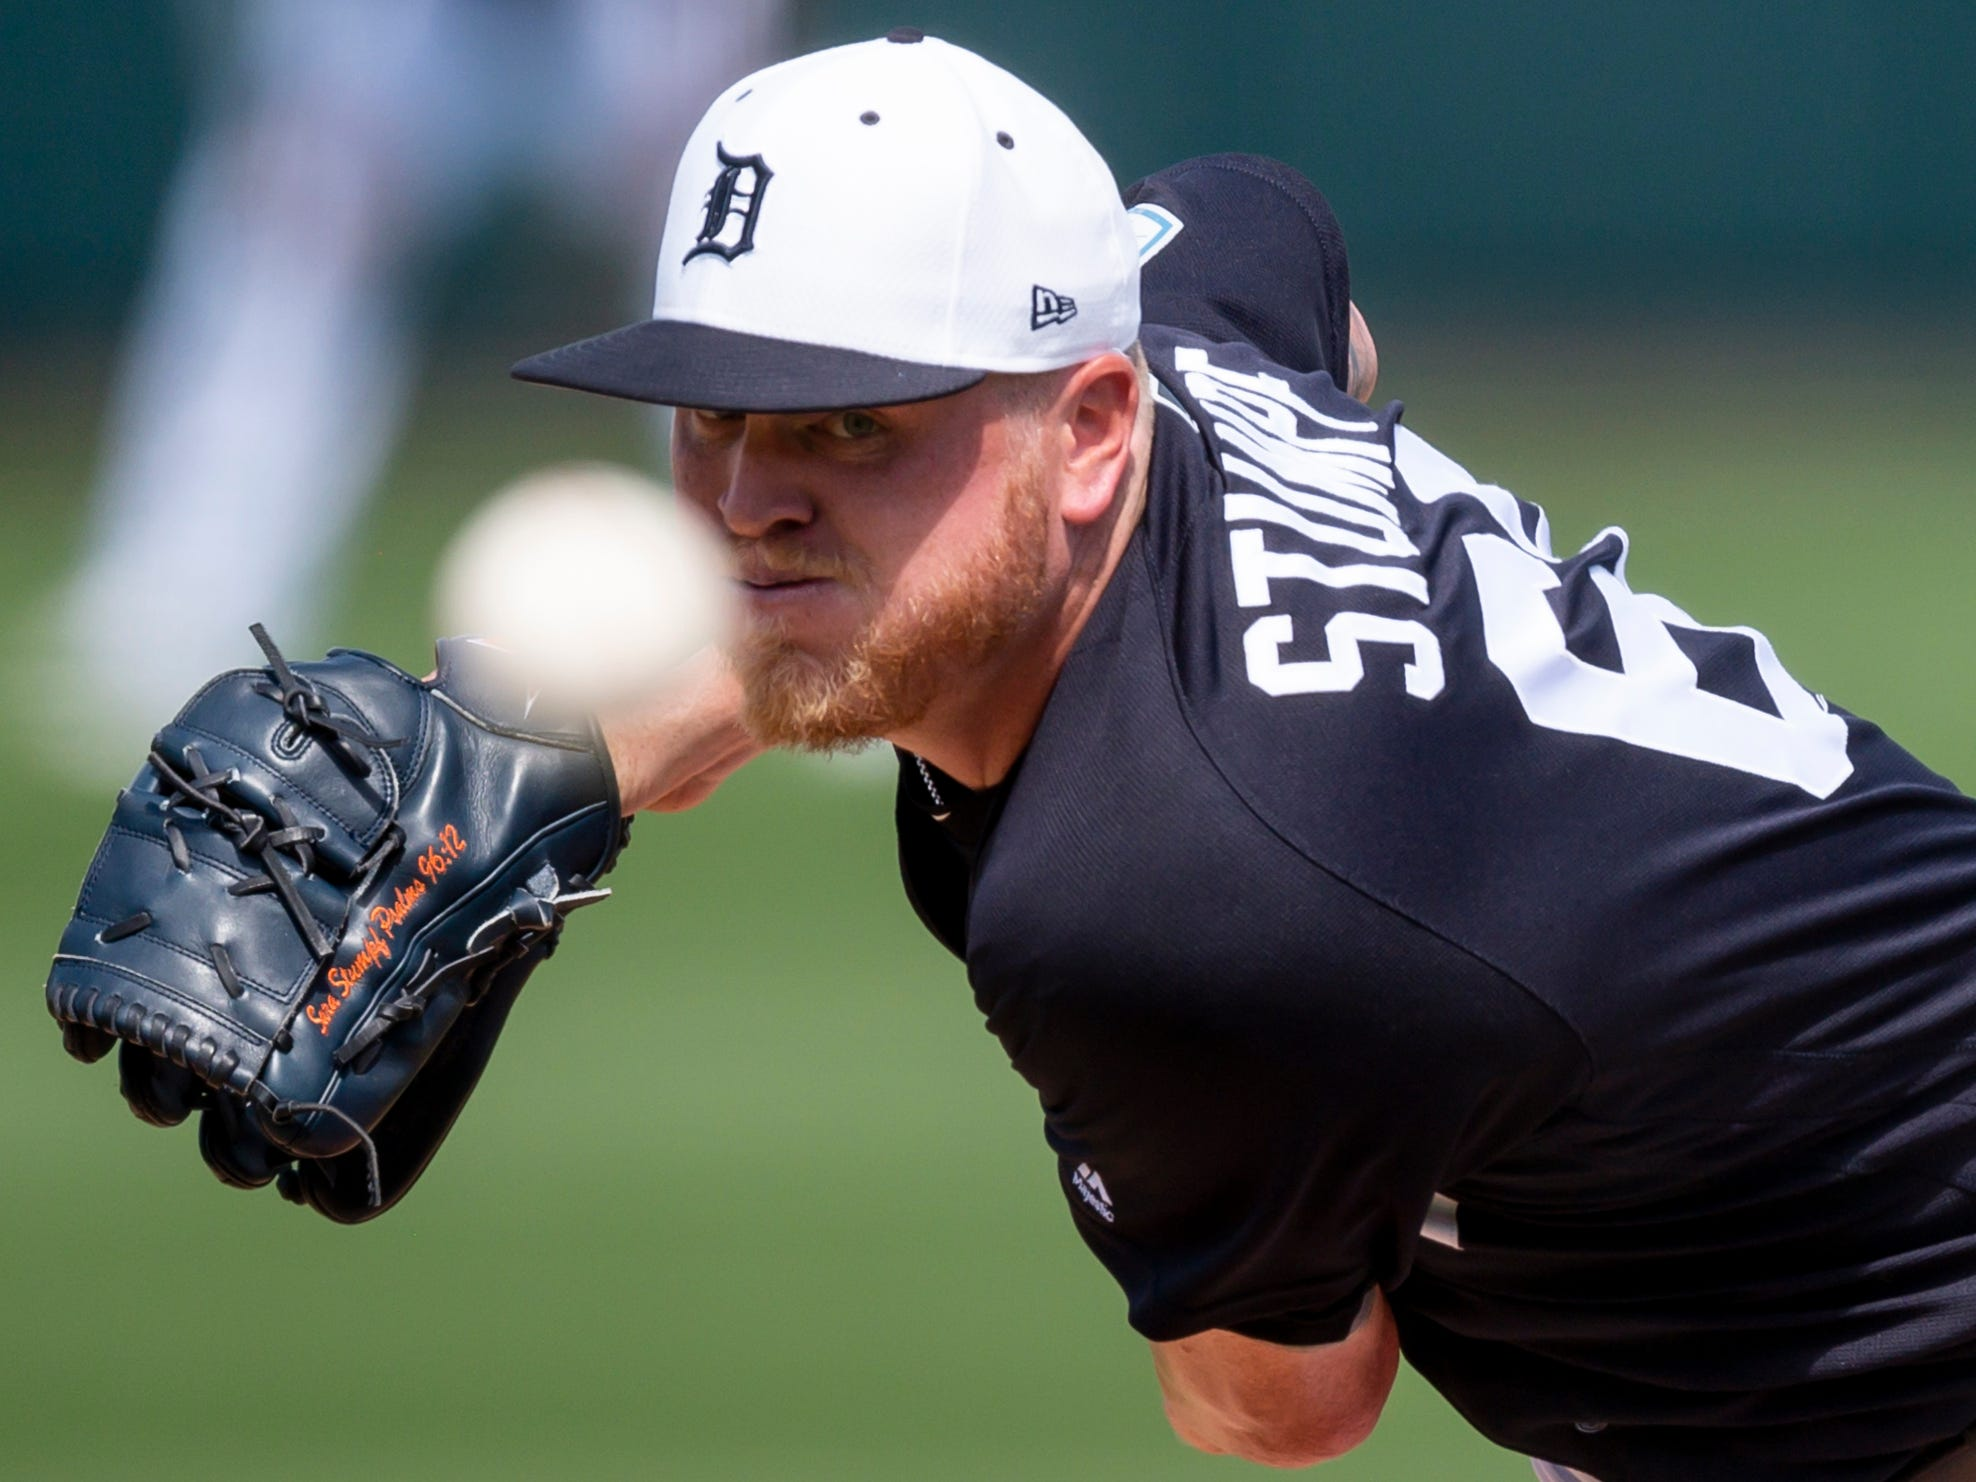 Detroit Tigers pitcher Daniel Stumpf throws a pitch during the sixth inning against the Boston Red Sox at Joker Marchant Stadium in Lakeland, Fla. on March 14, 2019.